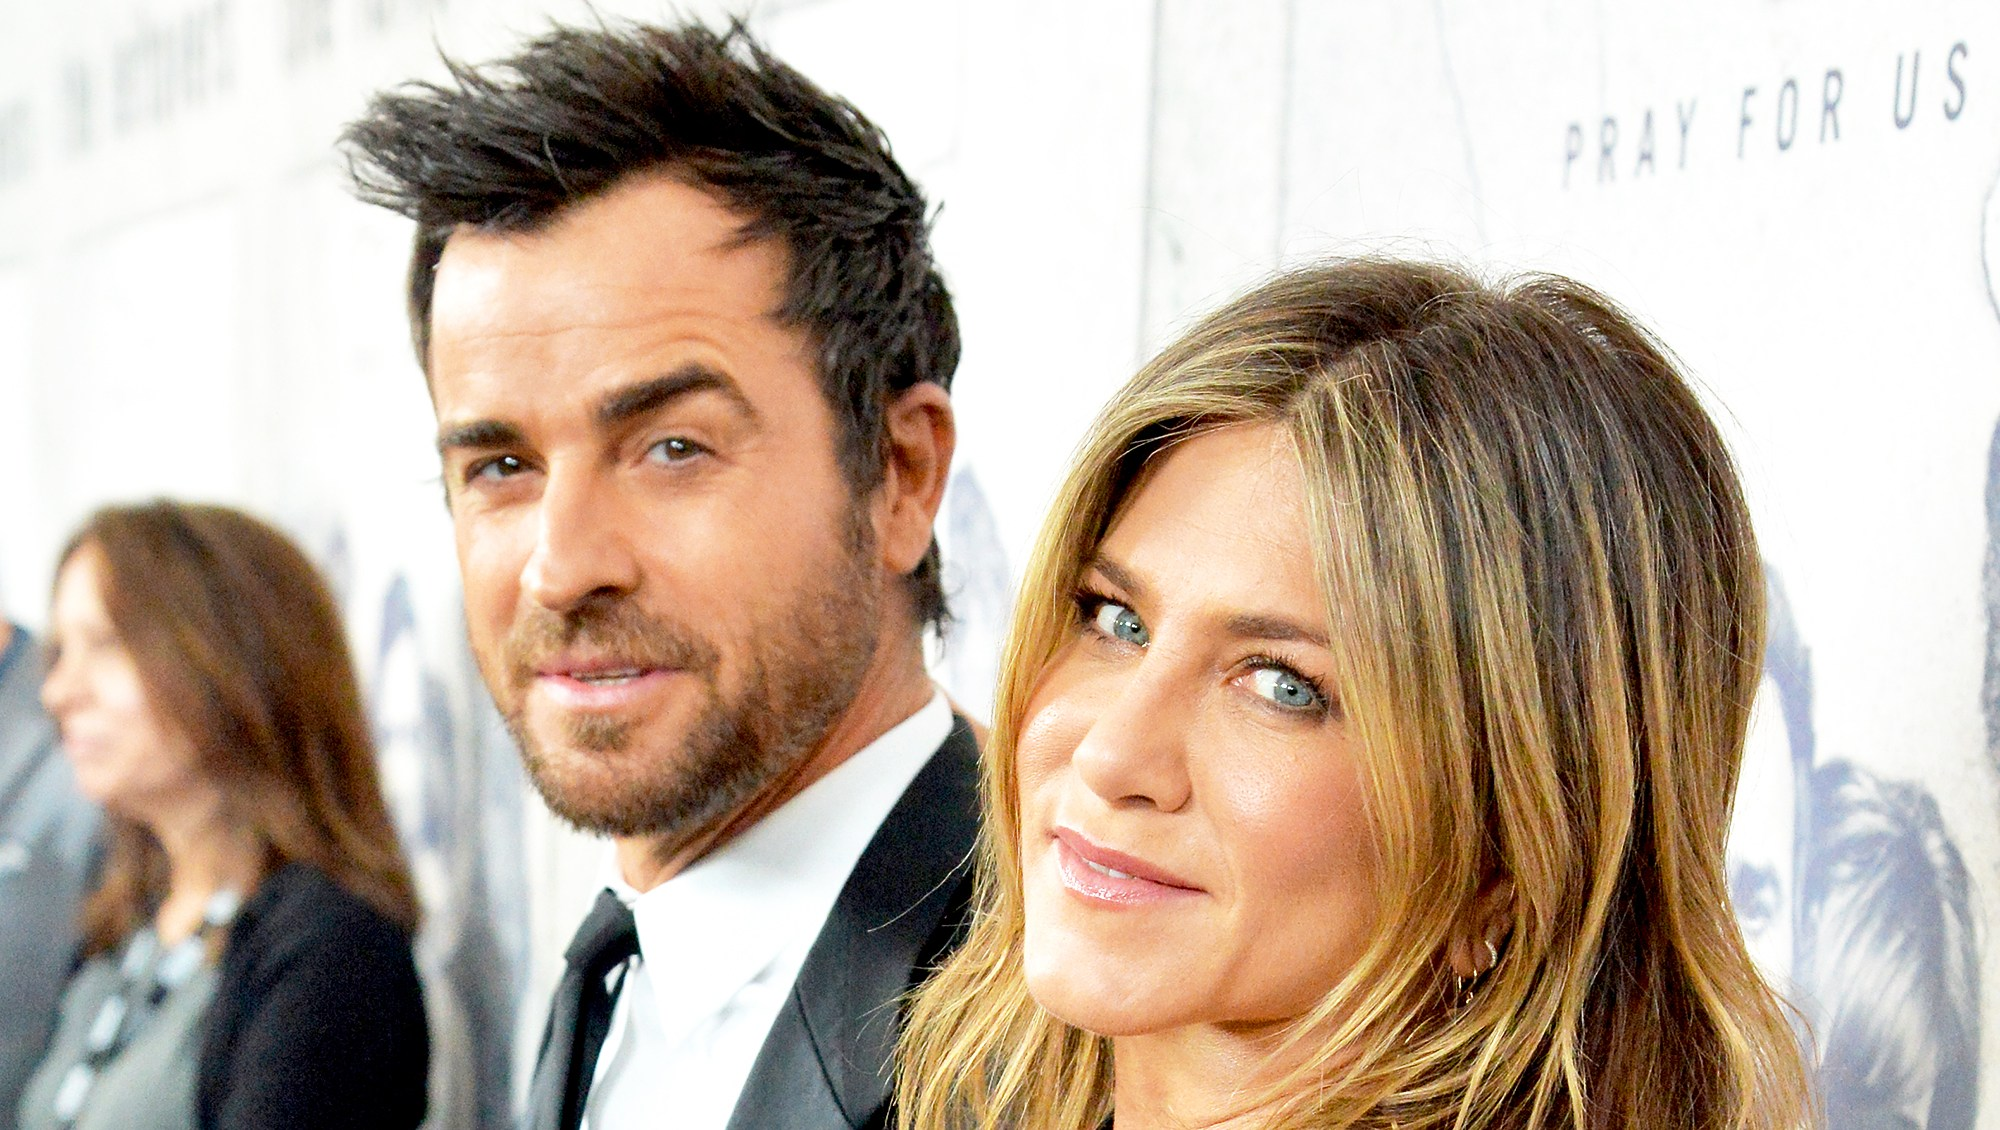 """Justin Theroux and Jennifer Aniston attend HBO's """"The Leftovers"""" season 3 premiere and after party at Avalon Hollywood on April 4, 2017 in Los Angeles, California."""